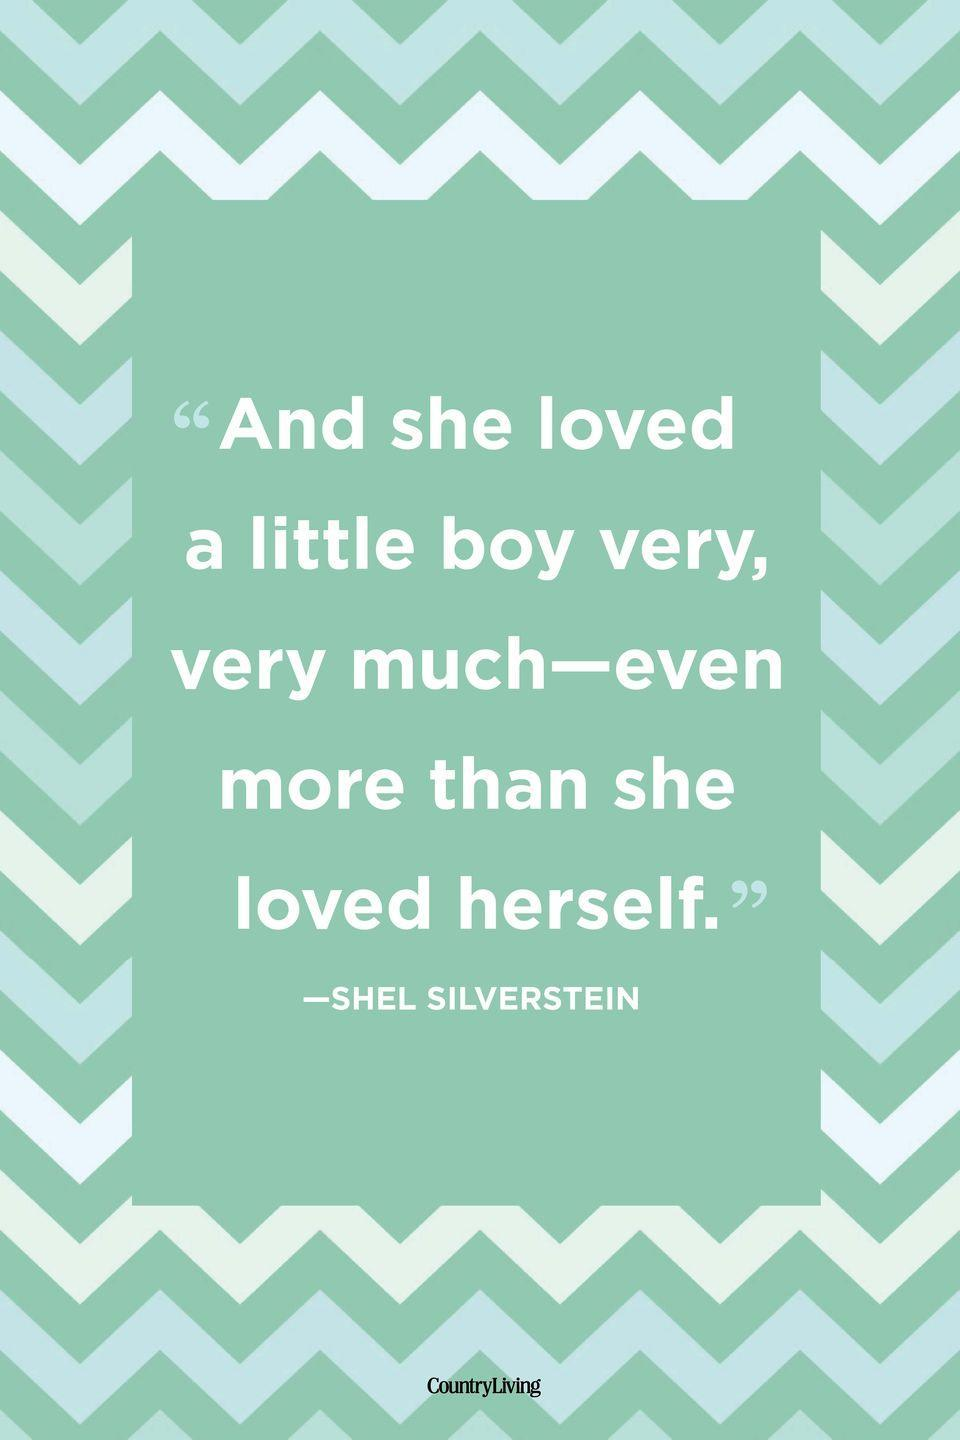 "<p>""And she loved a little boy very, very much—even more than she loved herself.""</p>"